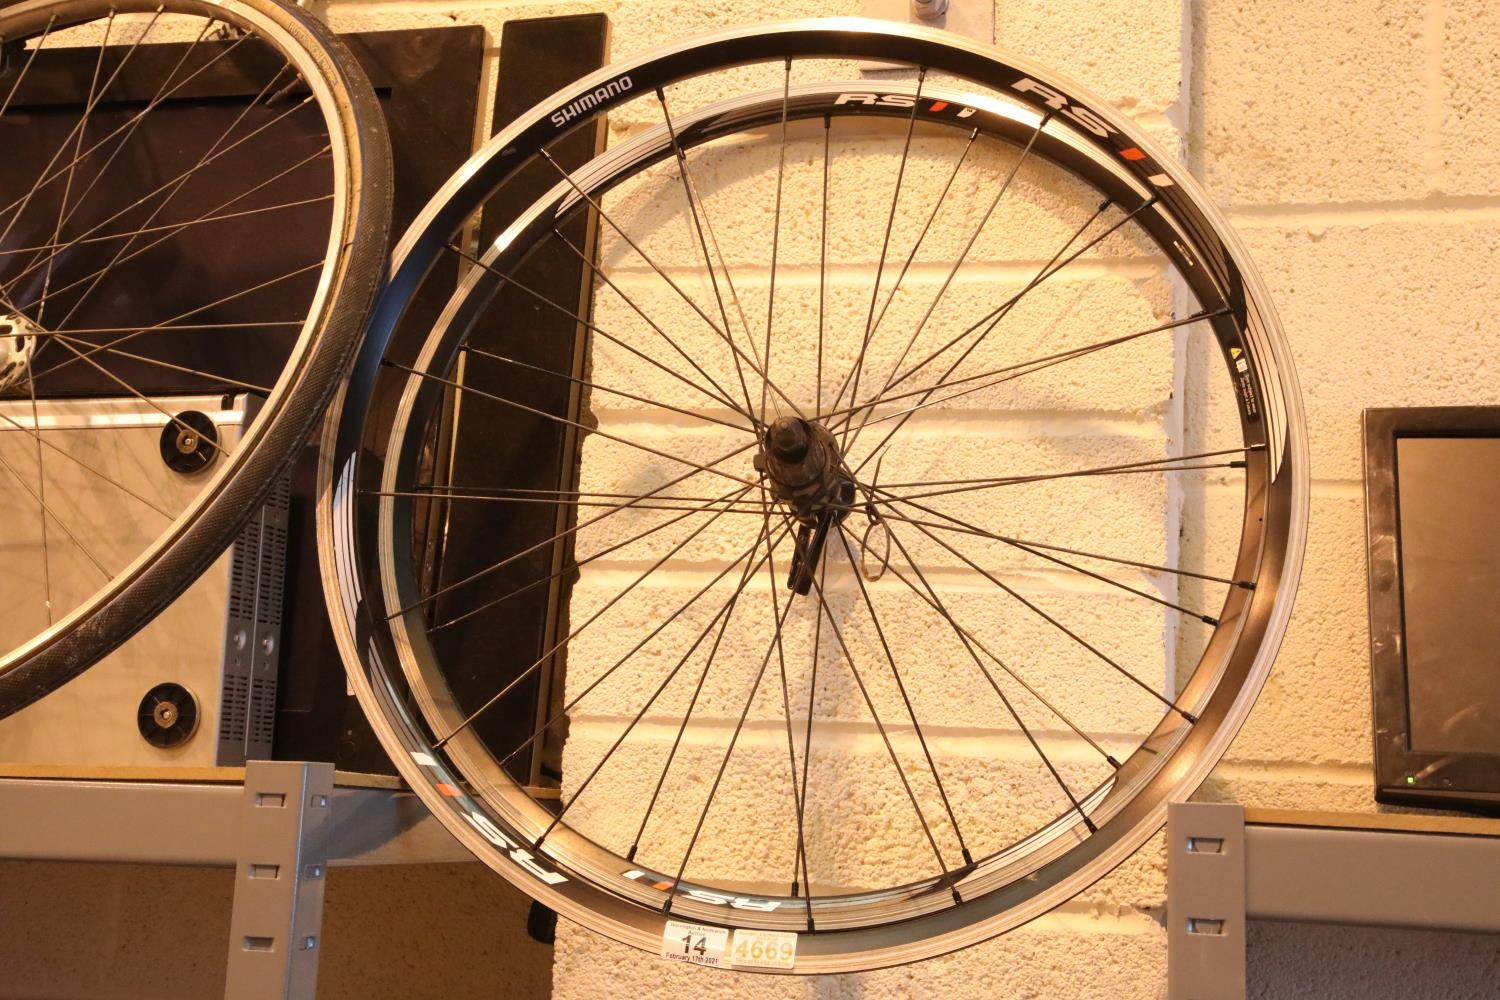 Two Shimano bike wheels. Not available for in-house P&P, contact Paul O'Hea at Mailboxes on 01925